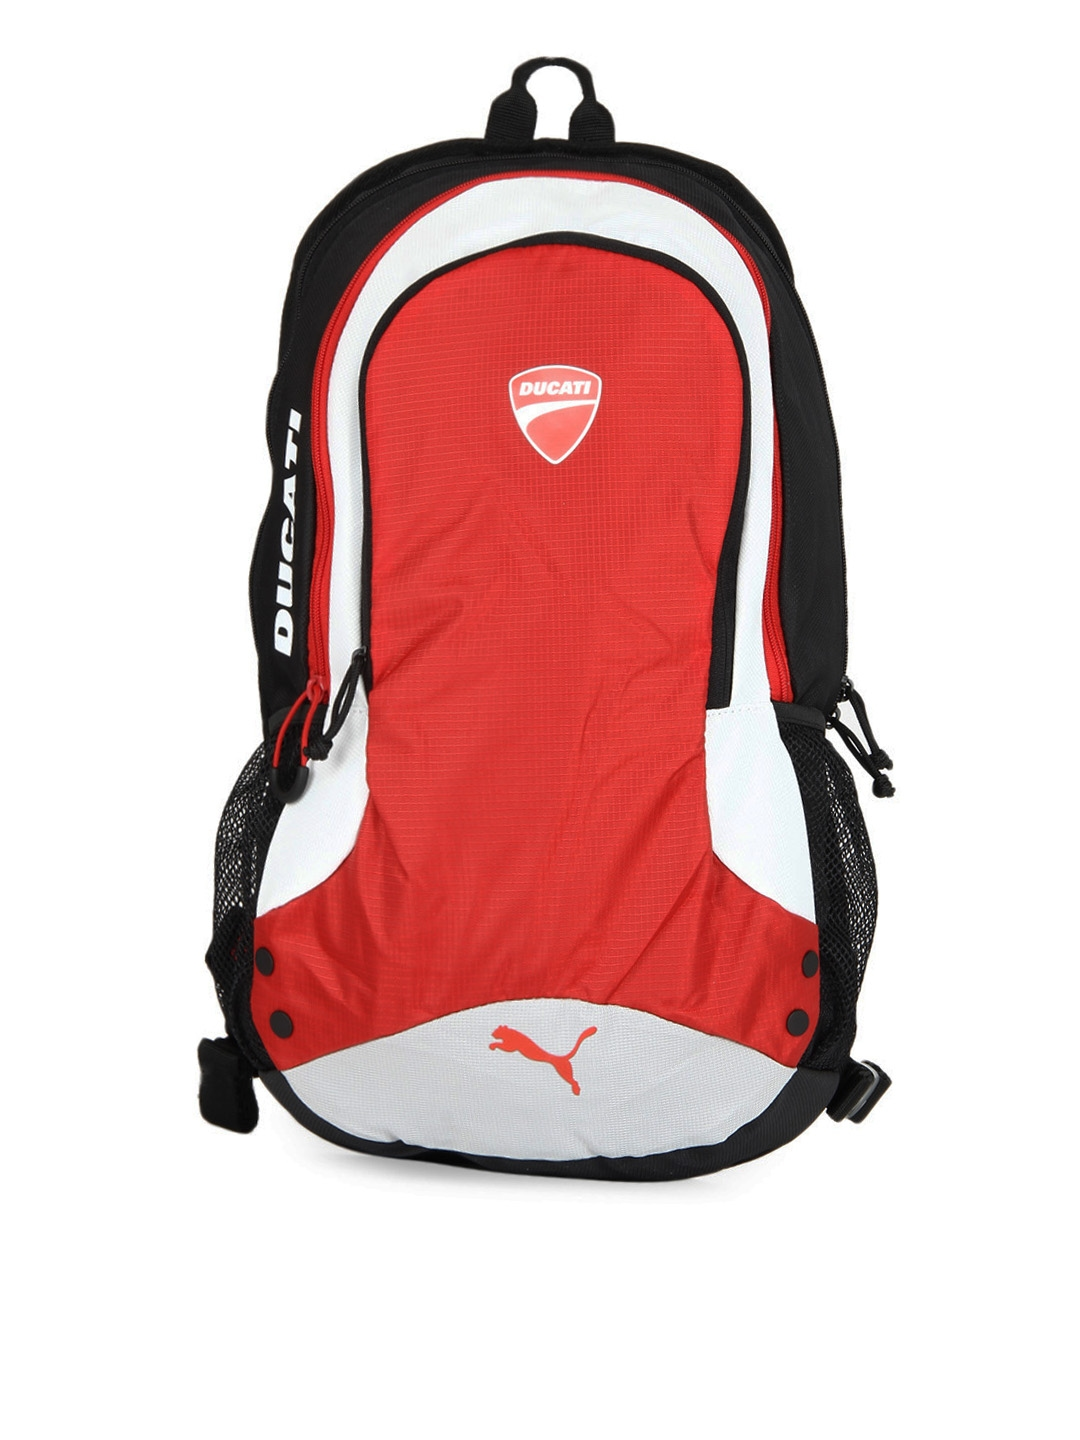 8bb450d649ce puma ducati backpack cheap   OFF36% Discounted